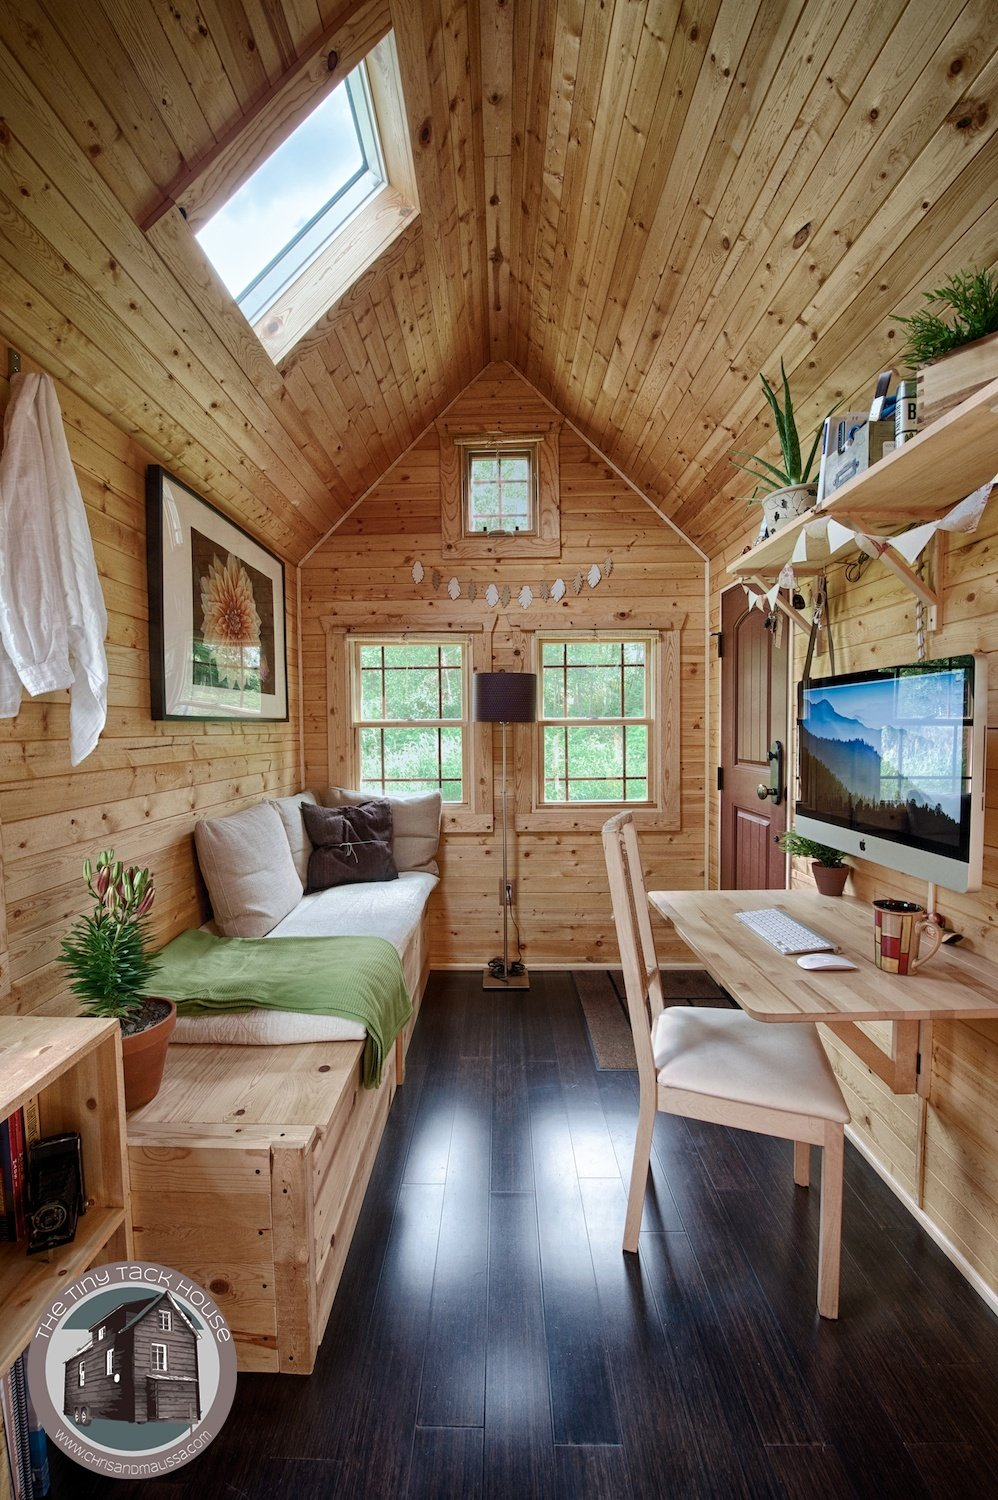 16 tiny houses you wish you could live in for Tiny house interieur